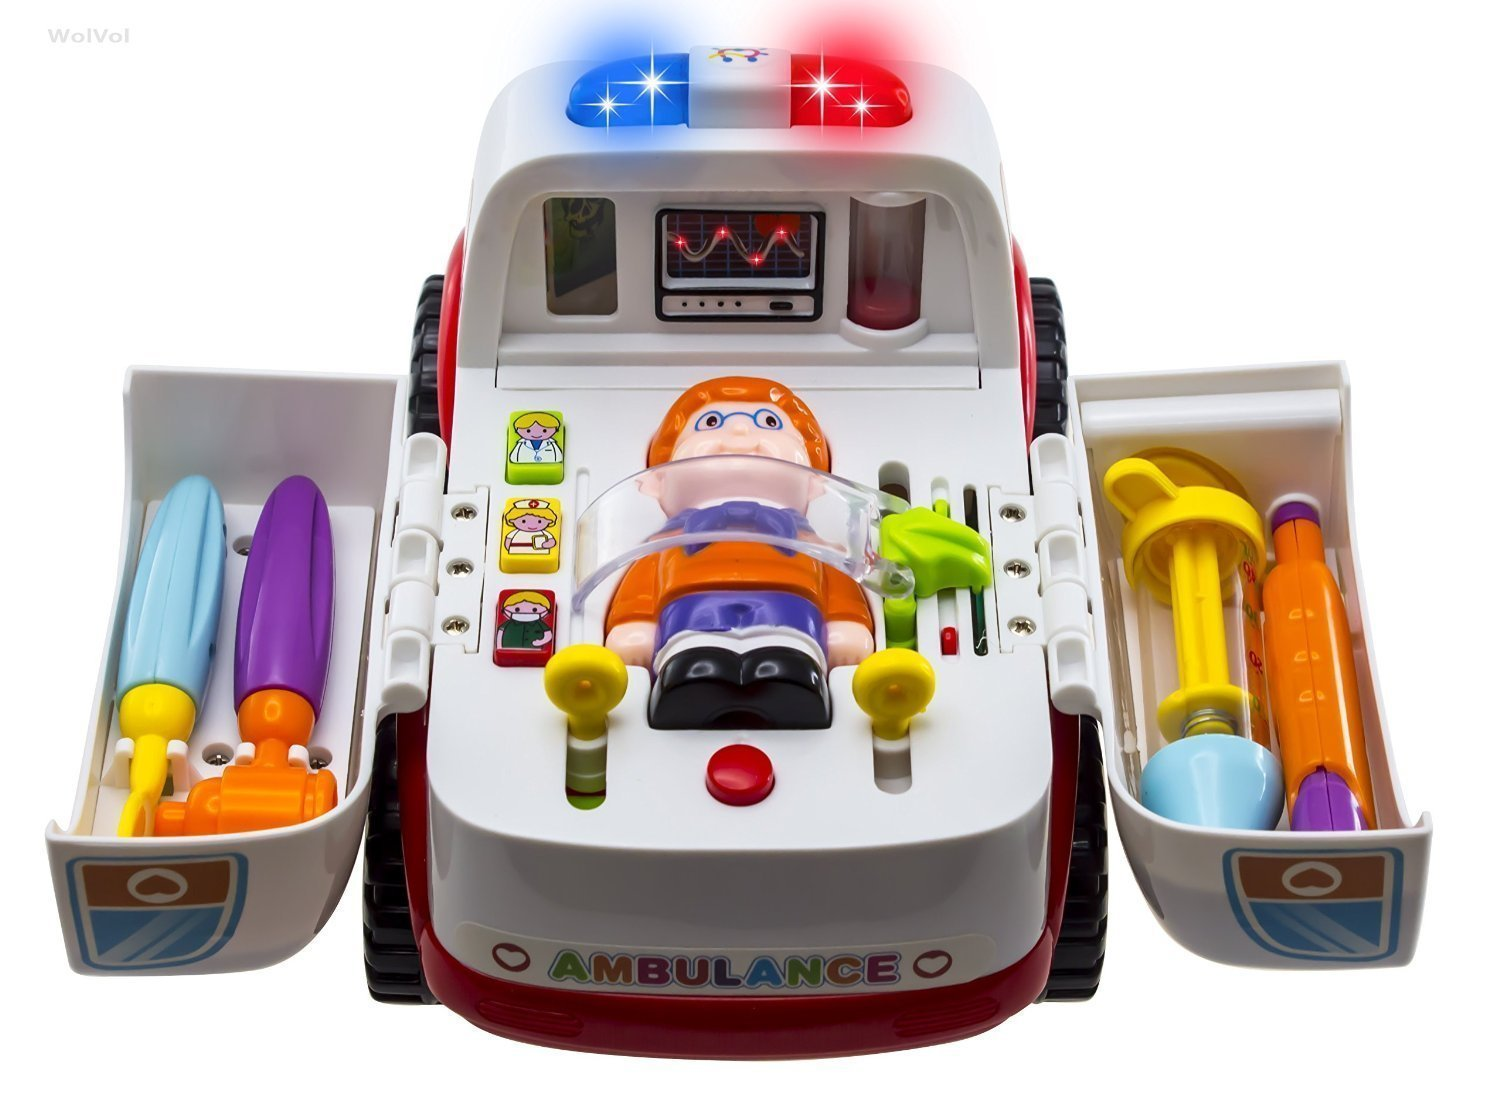 HANMUN Ambulance Toy Medical Kits Kids - 2019 Medical Play Kit Ambulance Toy with Lights and Sound Toddlers Euipment Rescue Vehicle Bump & Go by HANMUN